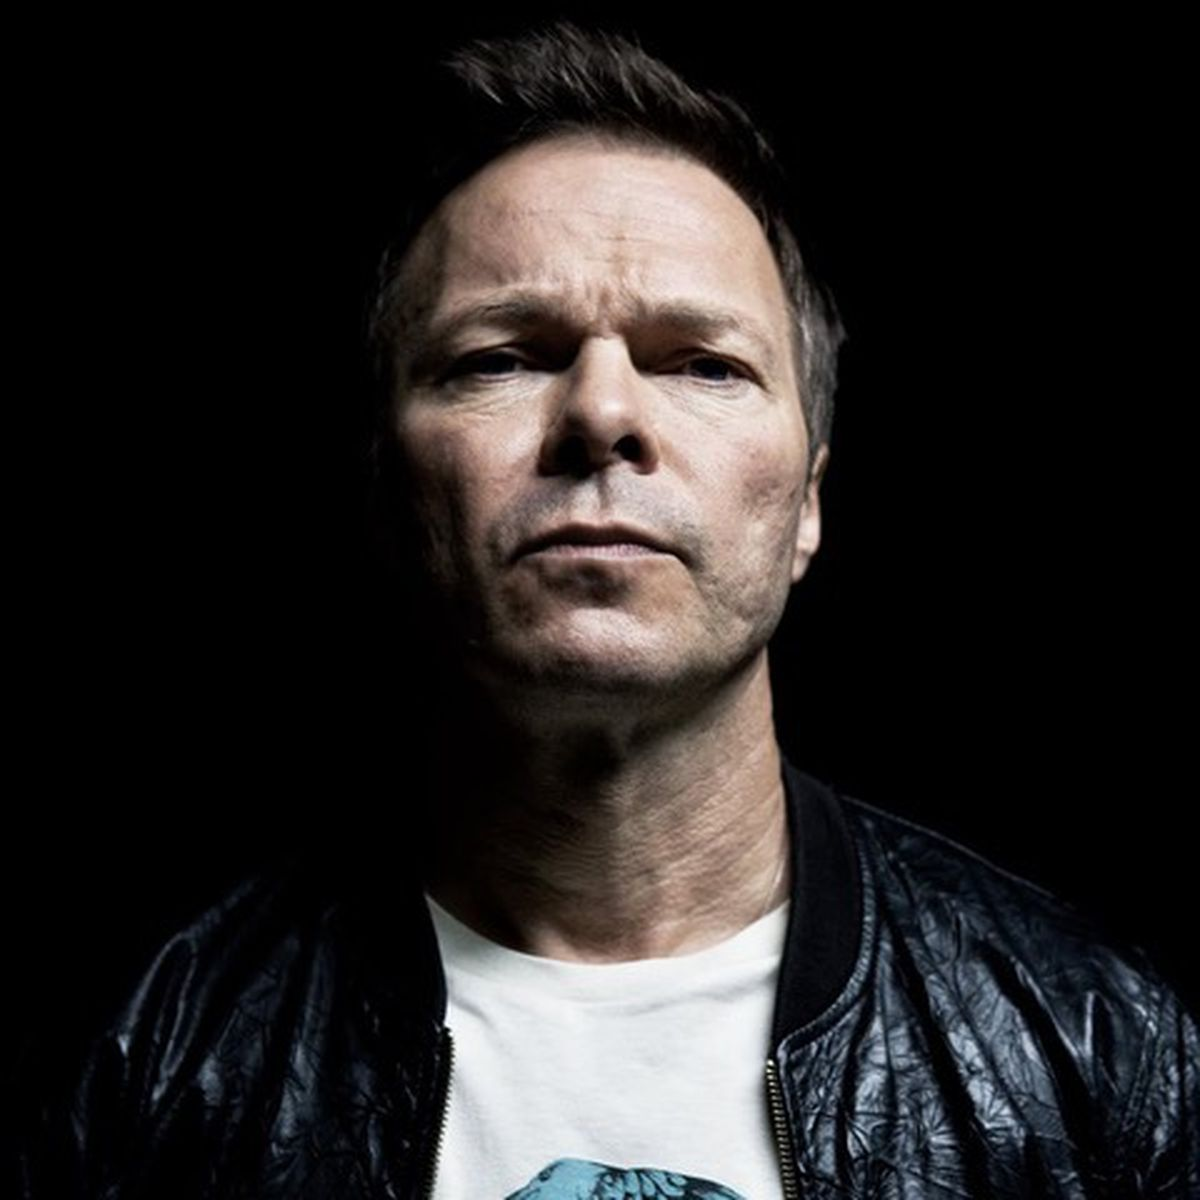 DJ Pete Tong is set to play Crooked House in the Park in Lichfield this August